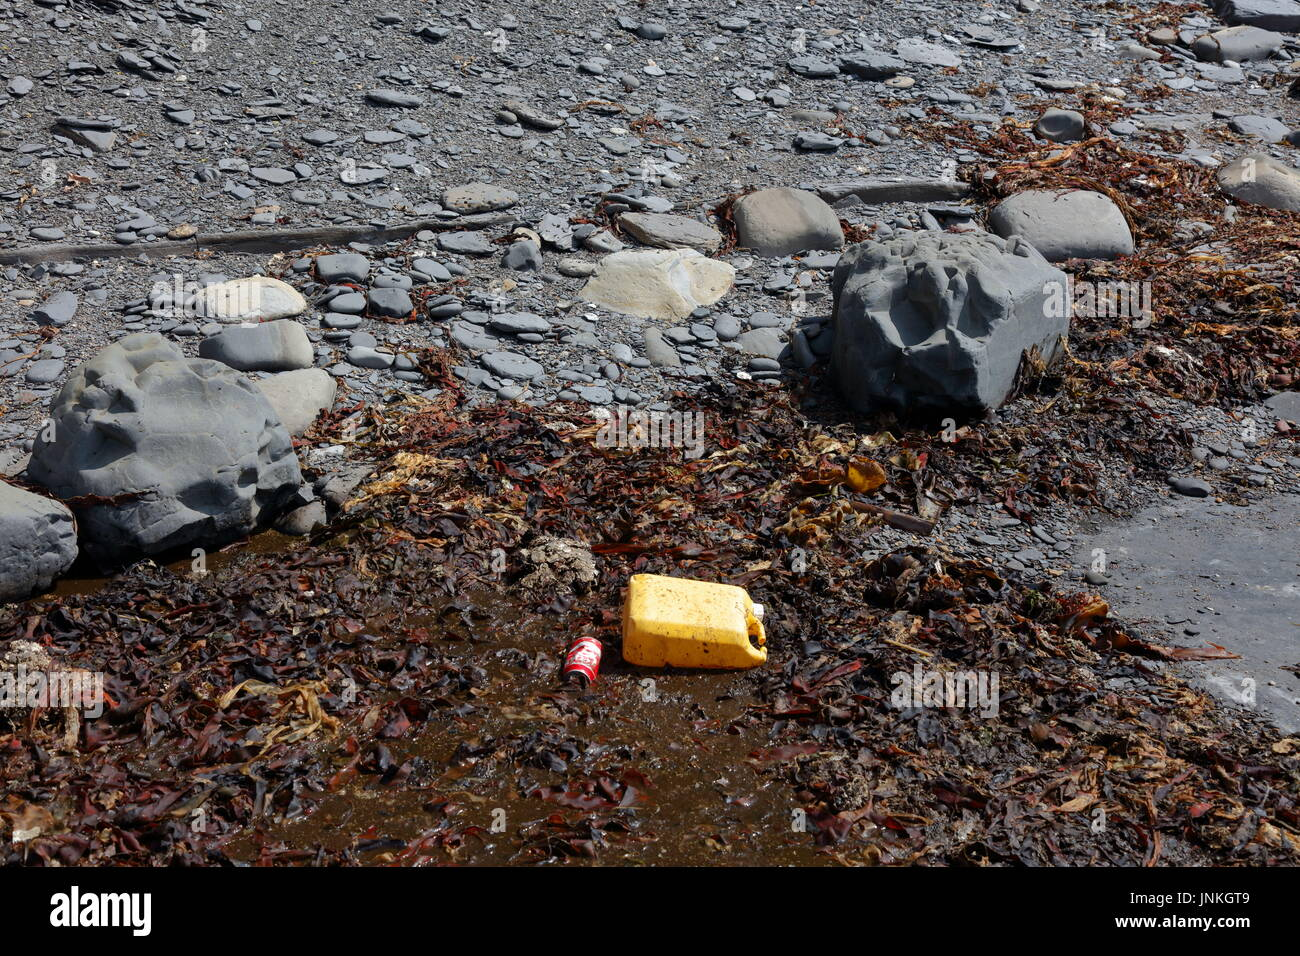 Plastic container and infamously discarded Coke can amidst kelp seaweed and shale washed up on beach in Dorset UK Stock Photo